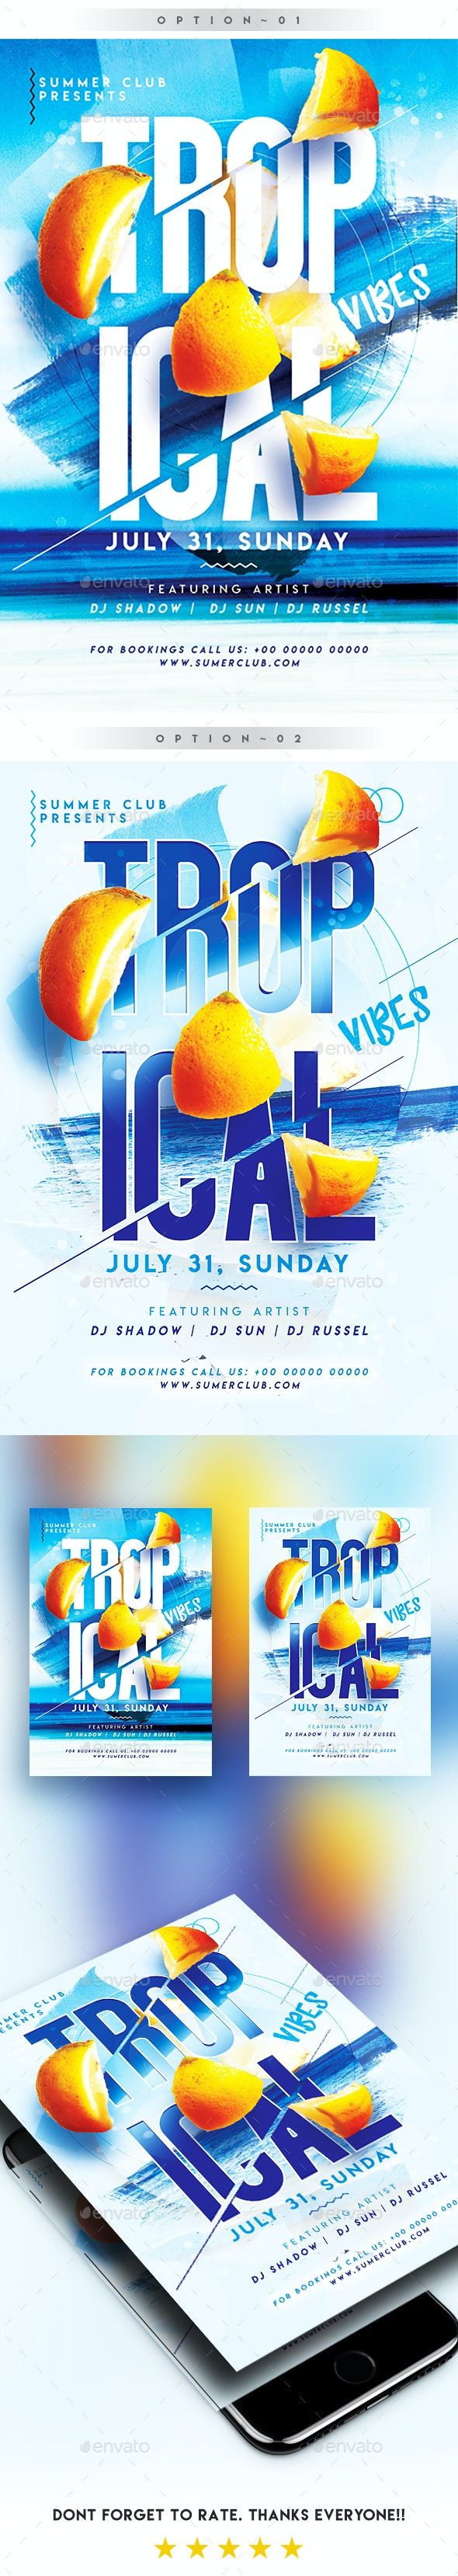 2 in 1 - Tropical Summer Vibes Party Flyer/Poster - Clubs & Parties Events